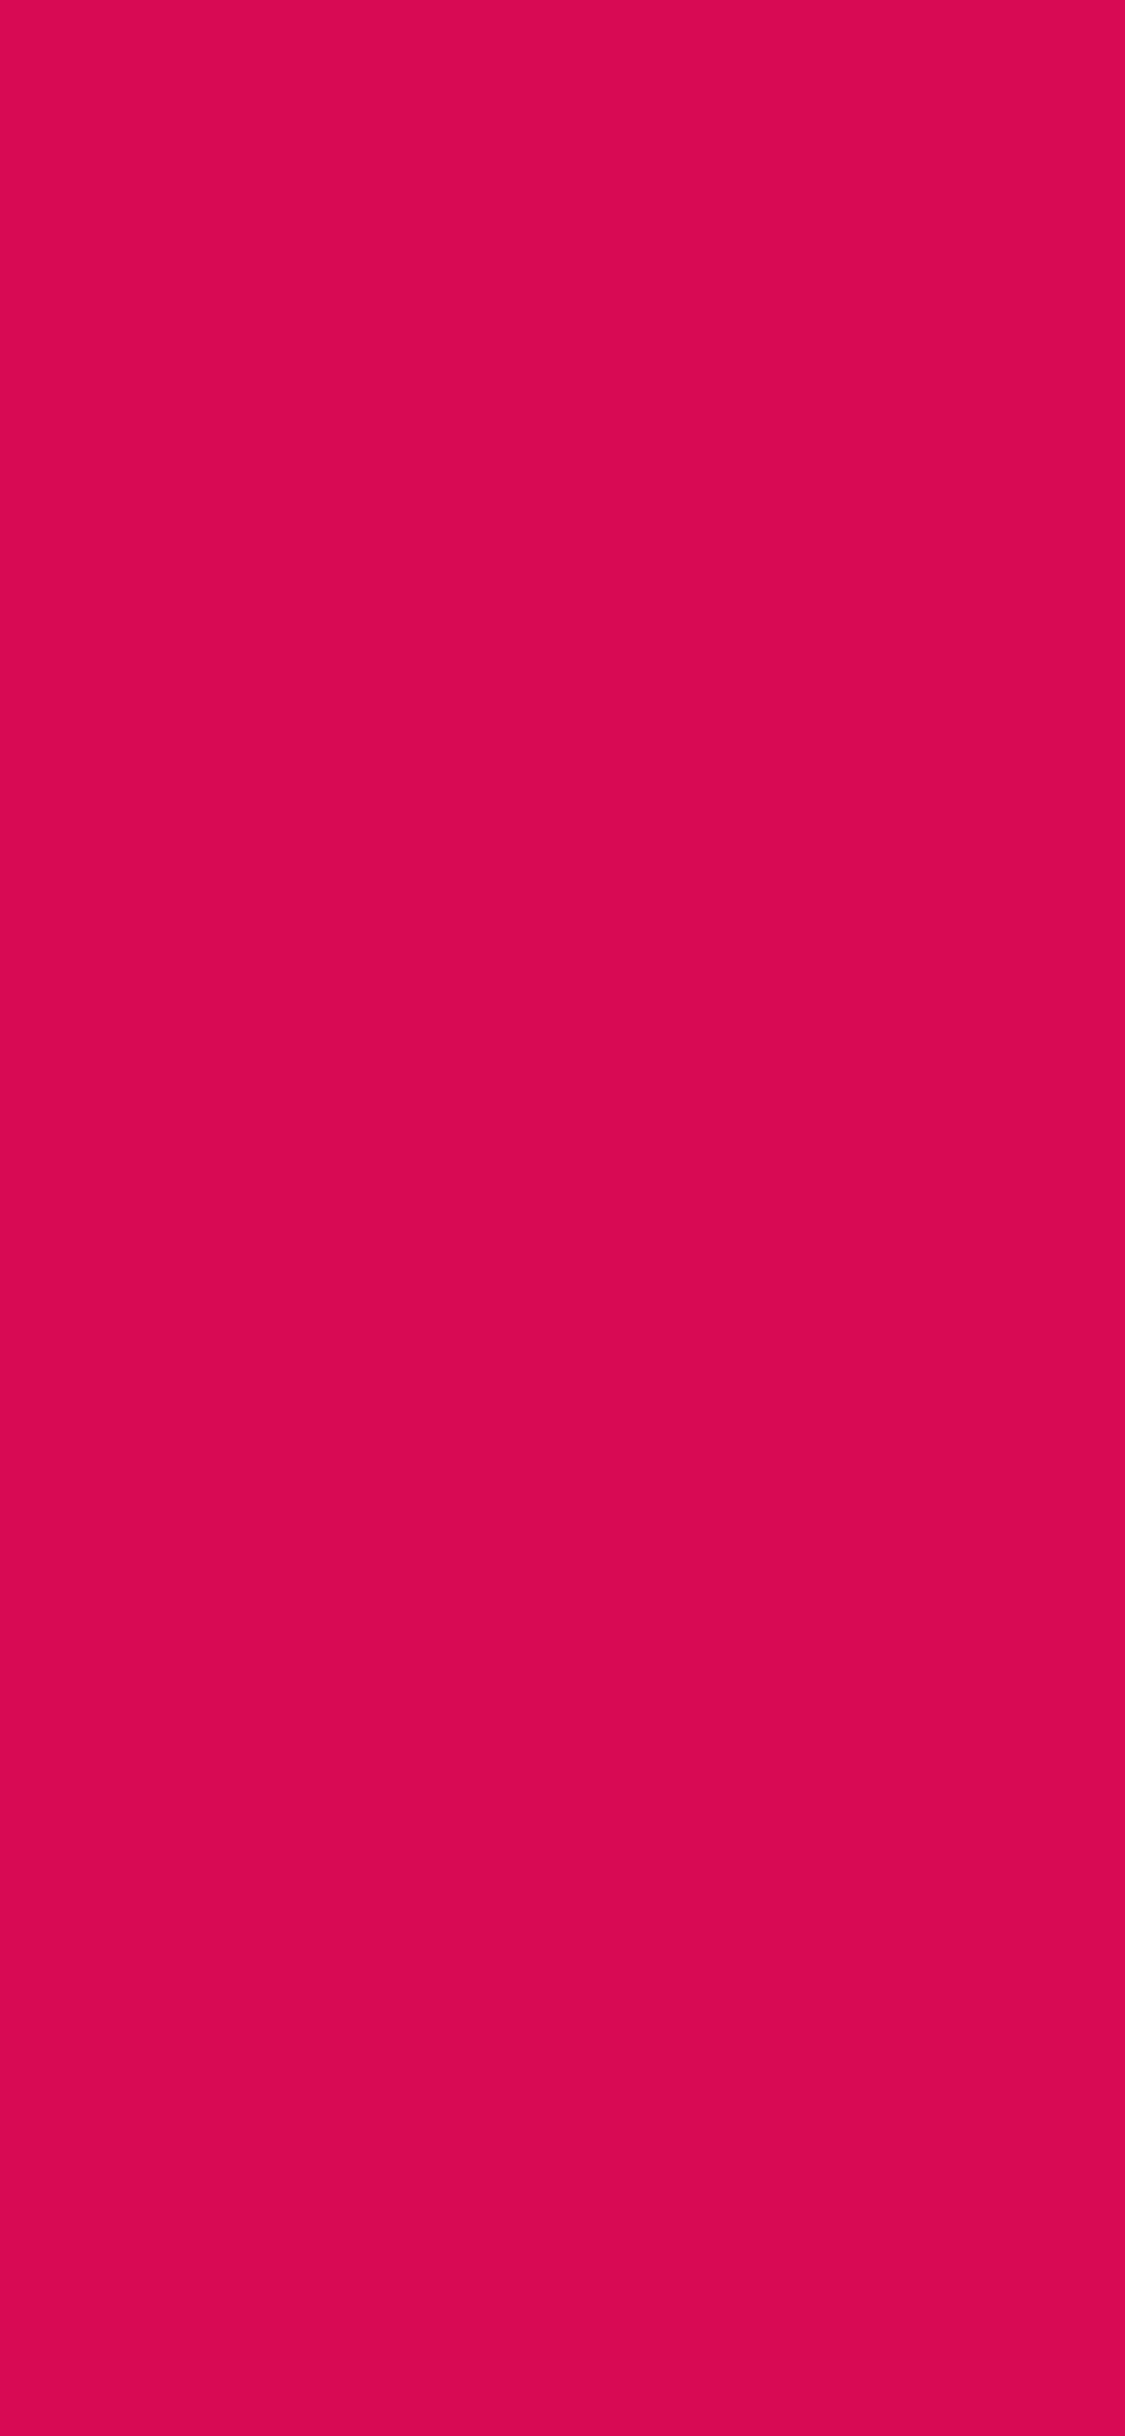 1125x2436 Debian Red Solid Color Background